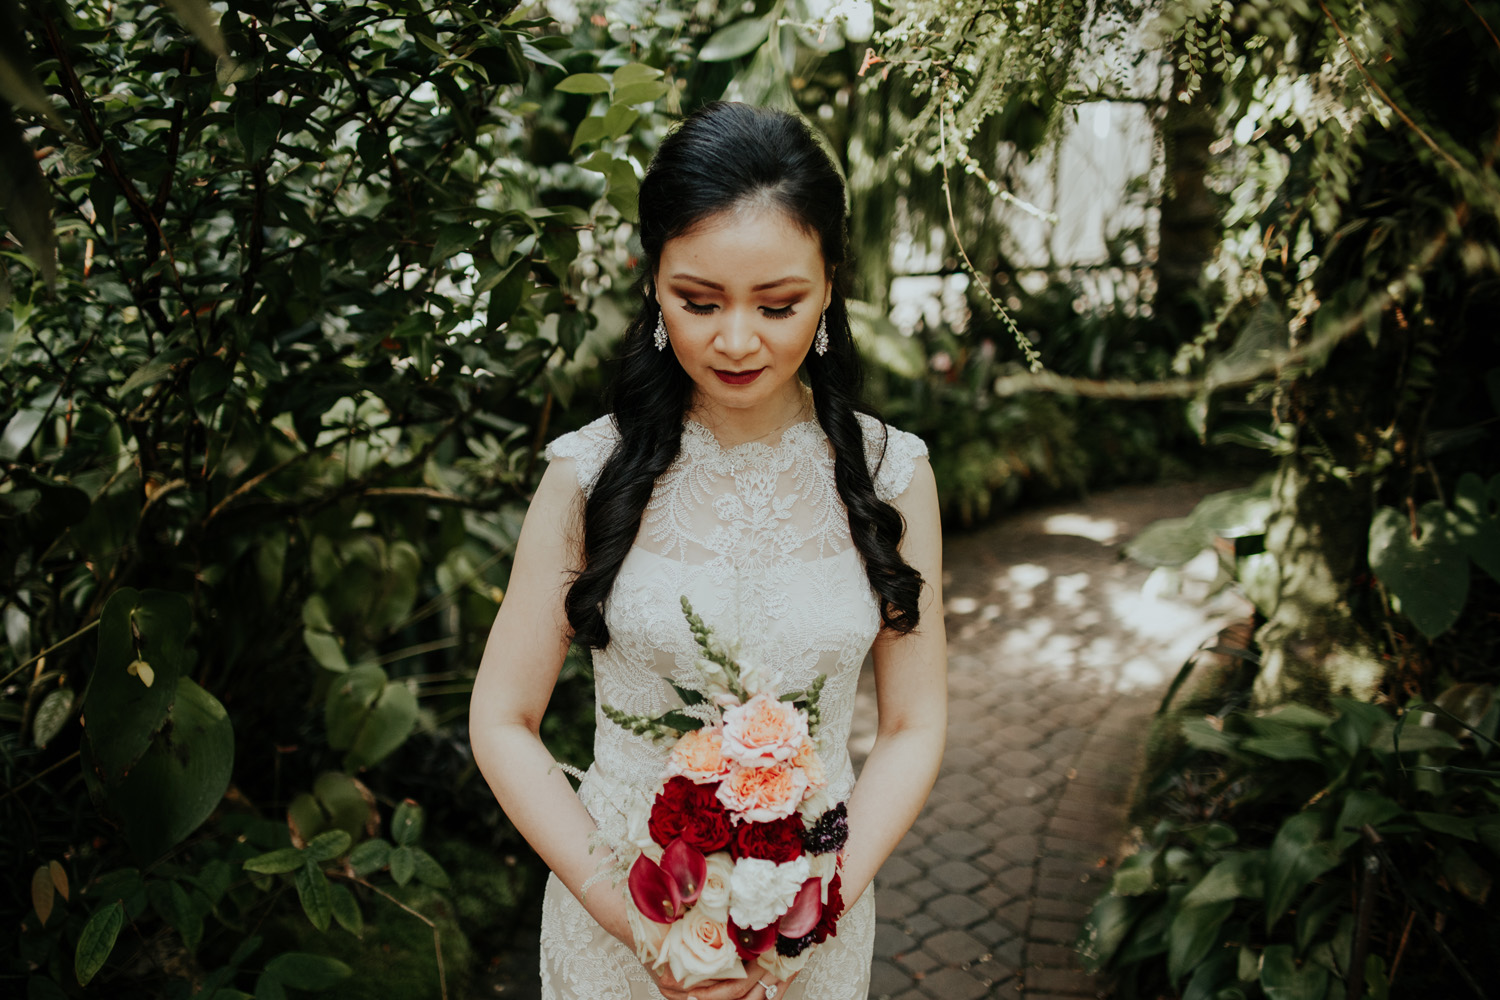 atlanta wedding photographers destination elopement photographer engagement photography atlanta botanical gardens_1032.jpg